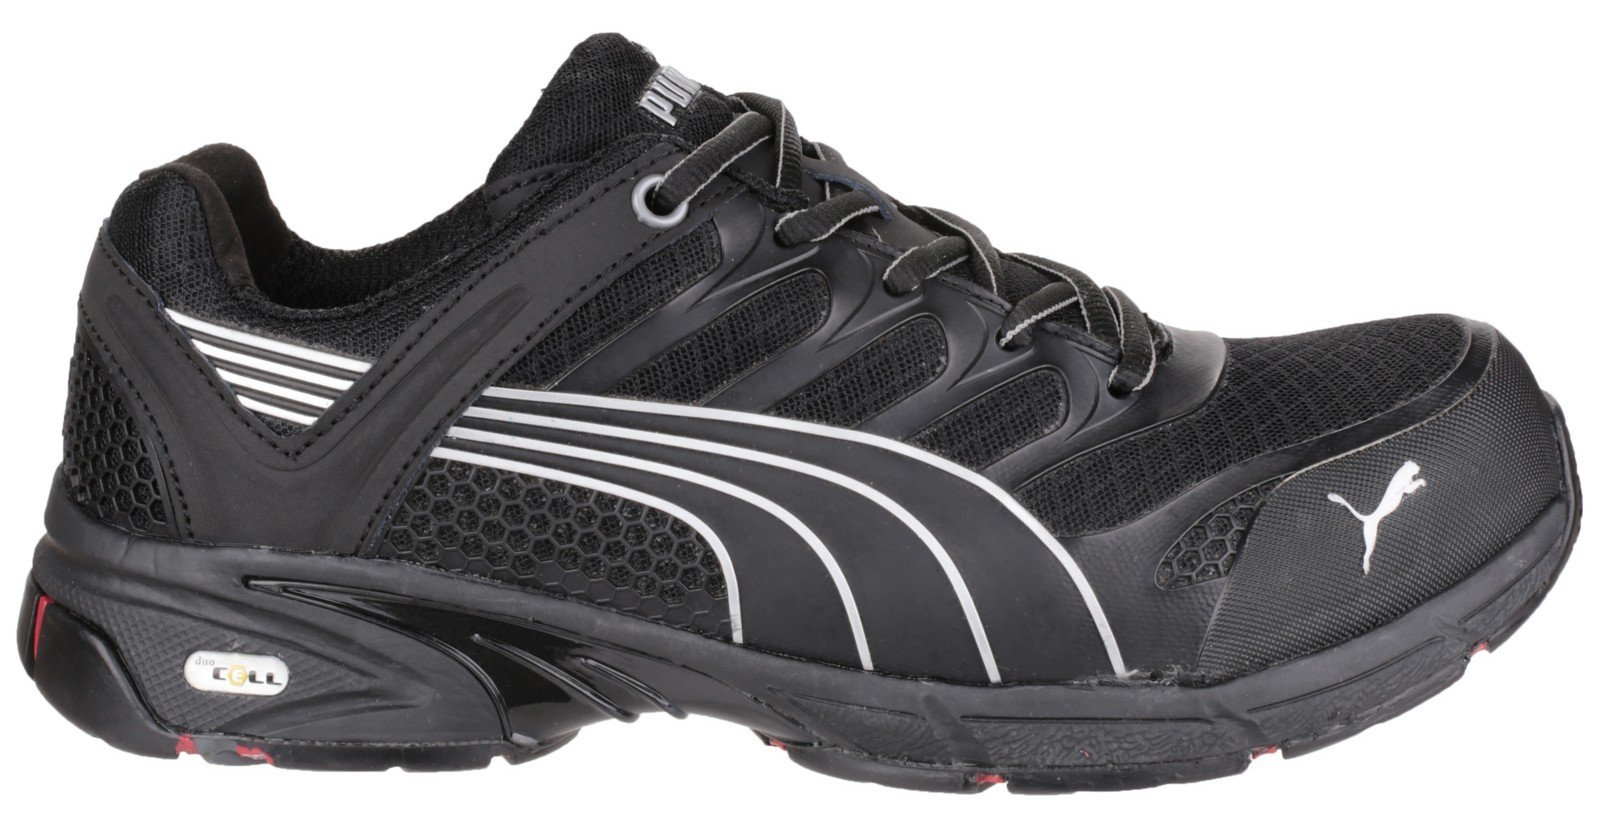 Puma Fuse Motion Black Low Safety Boot (EUR 46 US 12) by -puma (Image #2)